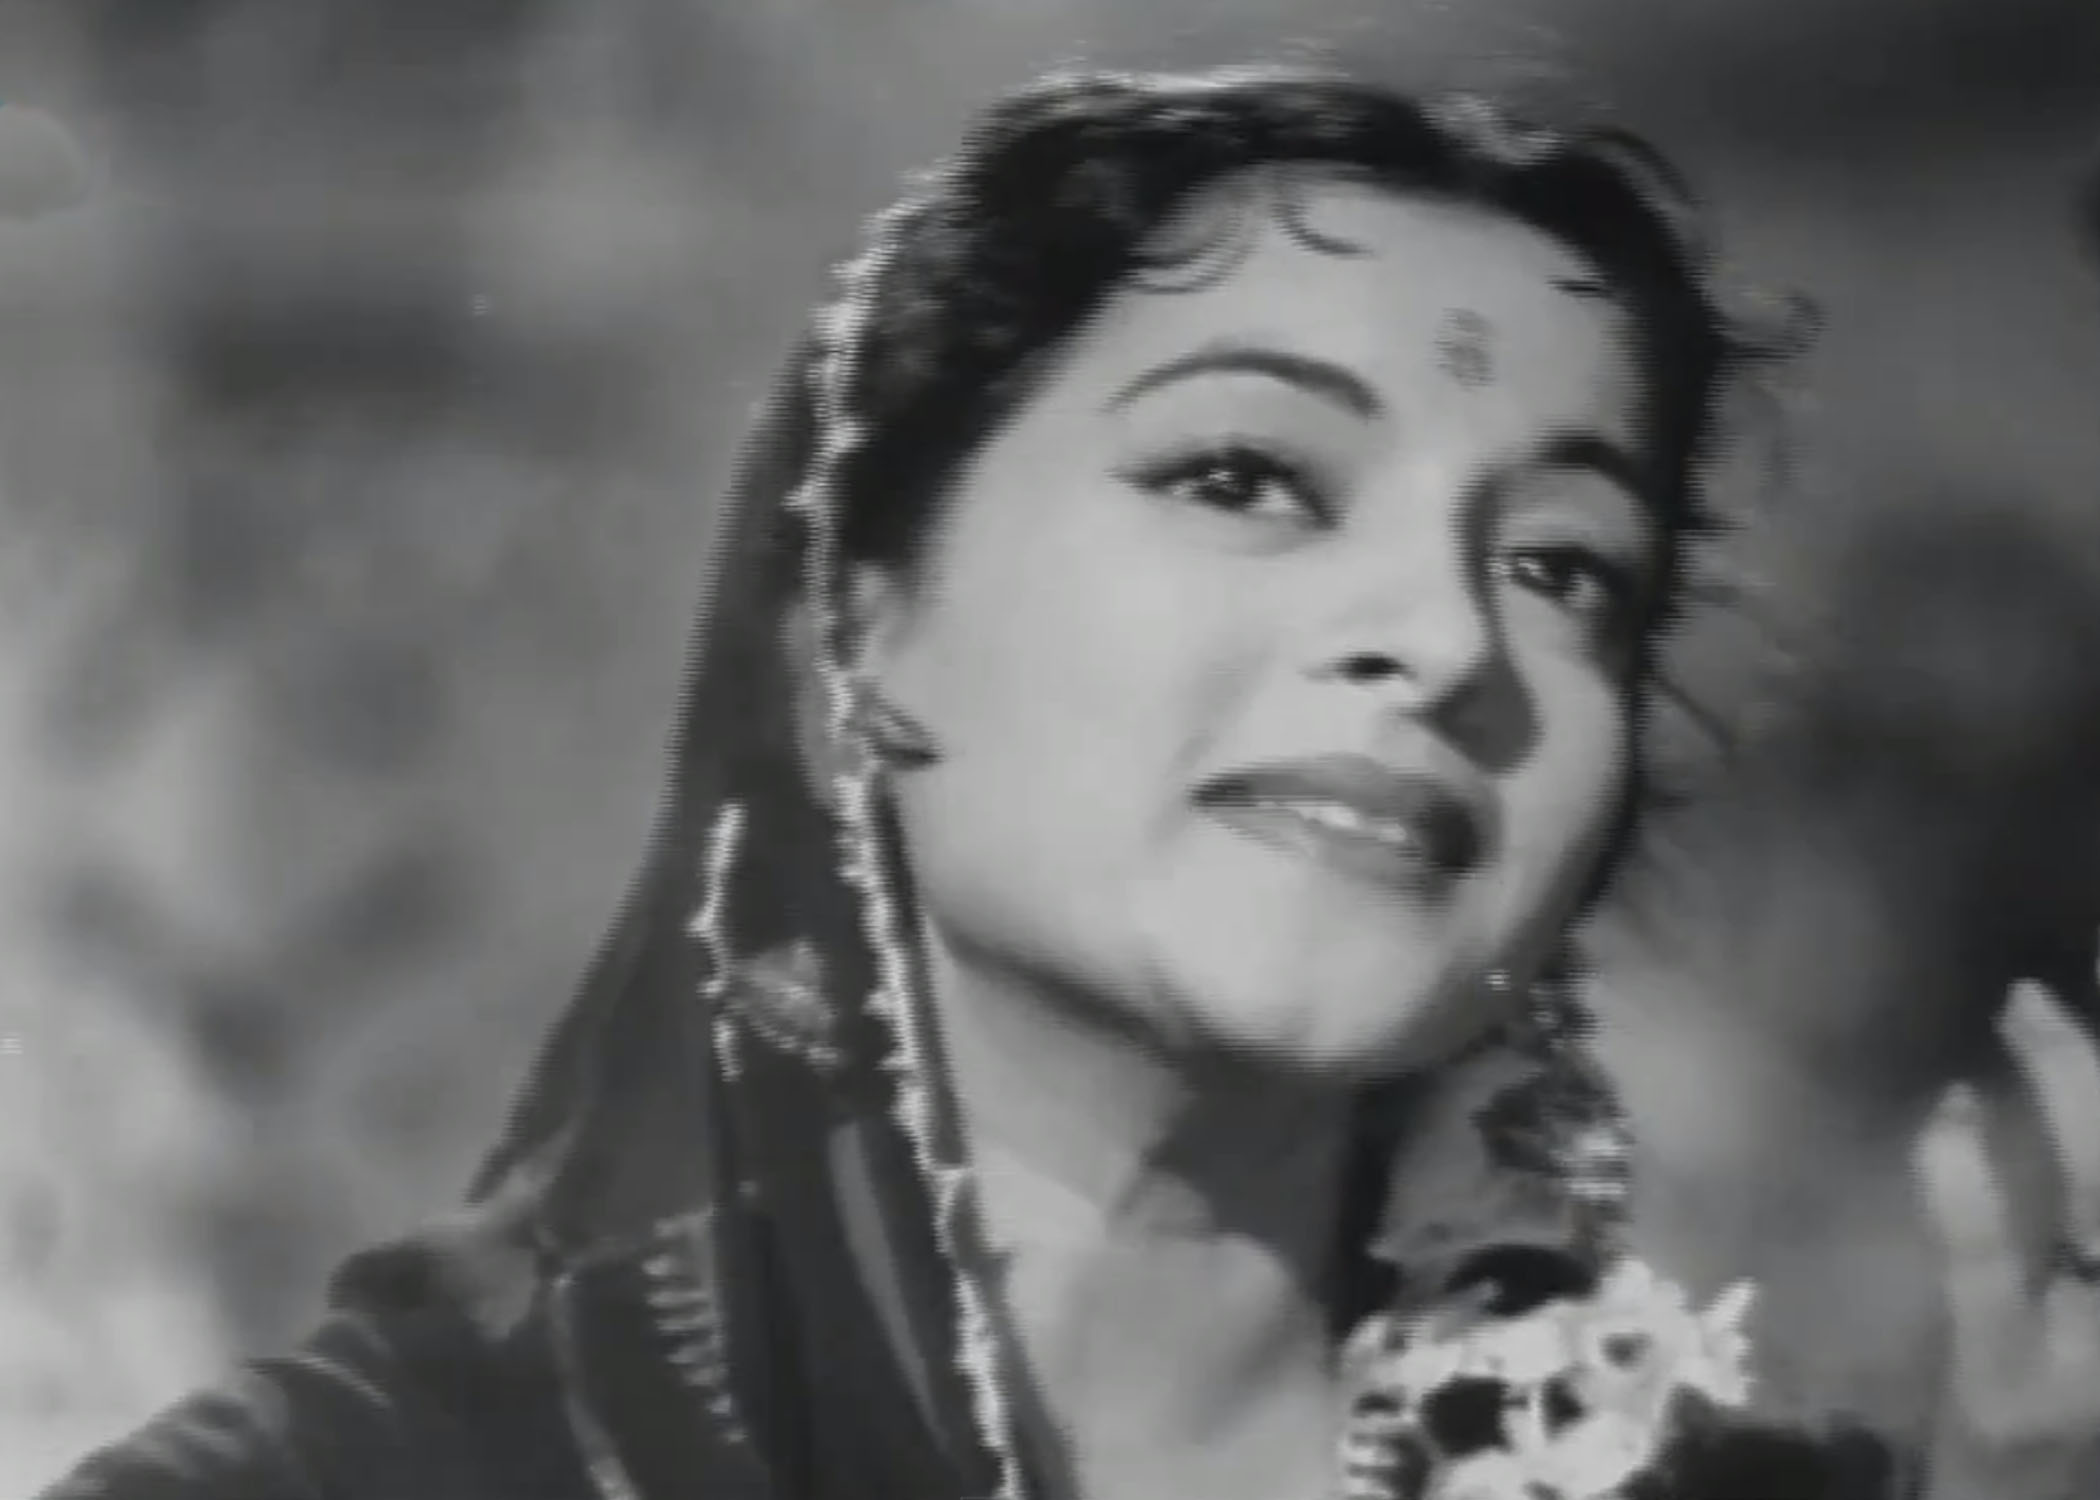 bina rai actress familybina rai actress, bina rai songs, bina rai funeral, bina rai images, bina rai photos, bina rai family, bina rai anarkali, bina rai age, bina rai biography, bina rai actress family, bina rai premnath, bina rai, bina rai facebook, bina rai sutd, bina rai pradeep kumar, bina rai dead, bina rai interview, bina rai videos, bina rai pictures, bina rai wallpapers